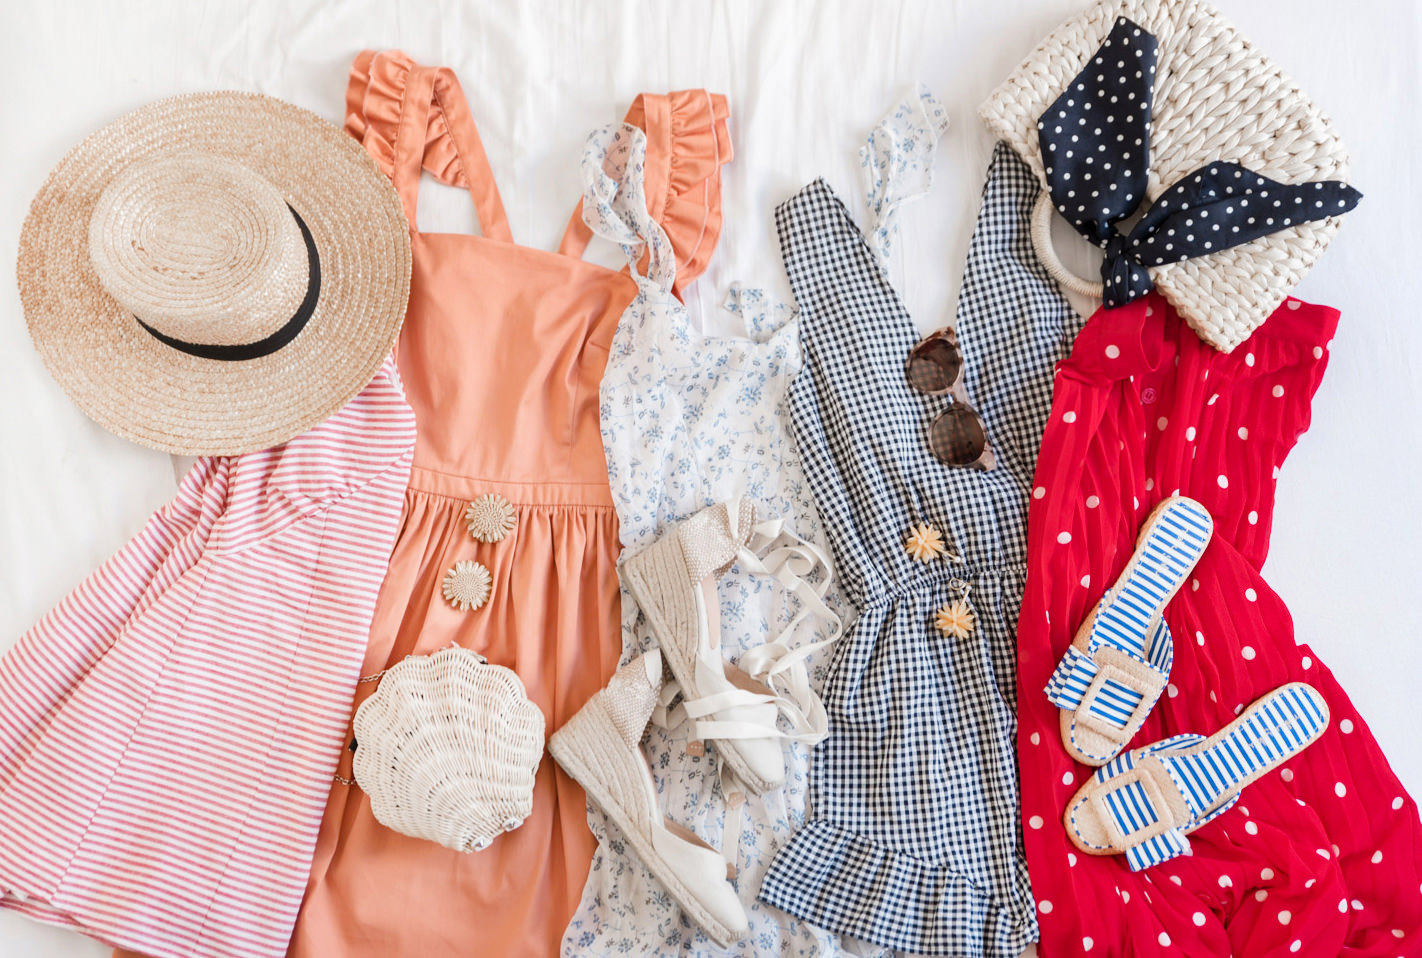 Blog-Mode-And-The-City-Lifestyle-Valise-Provence copie